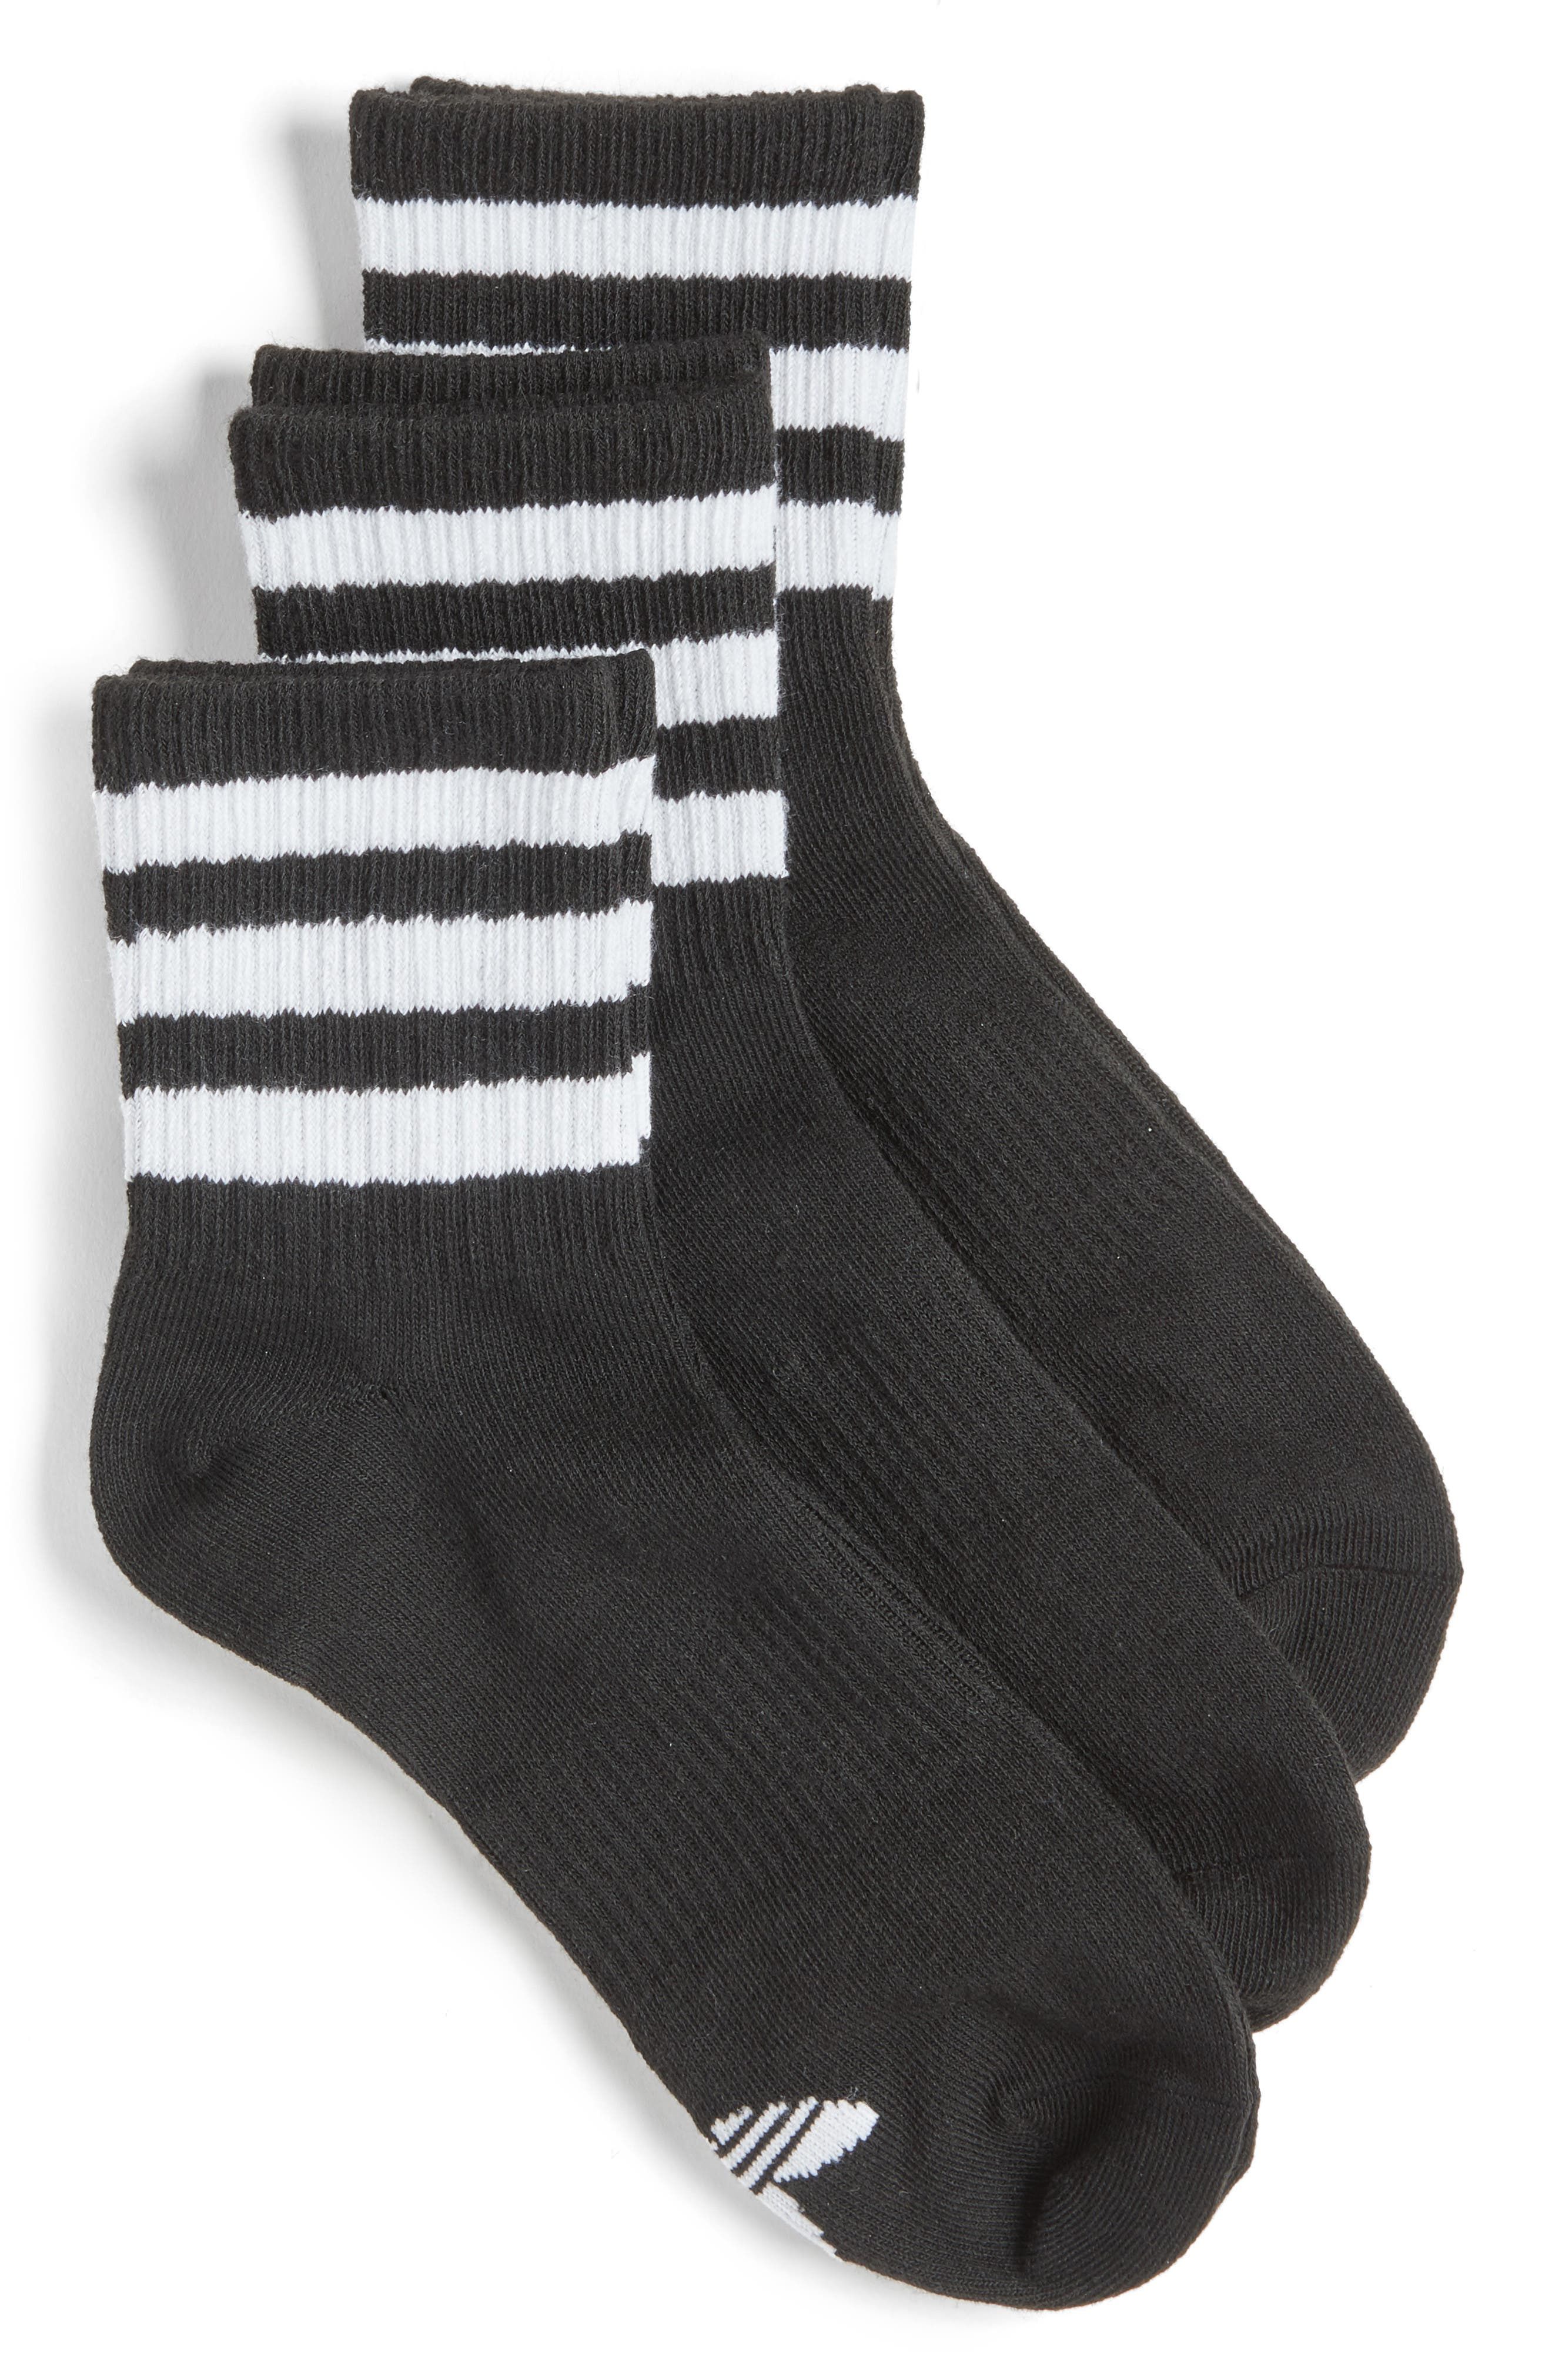 Main Image - adidas 3-Pack 3-Stripe Ankle Socks